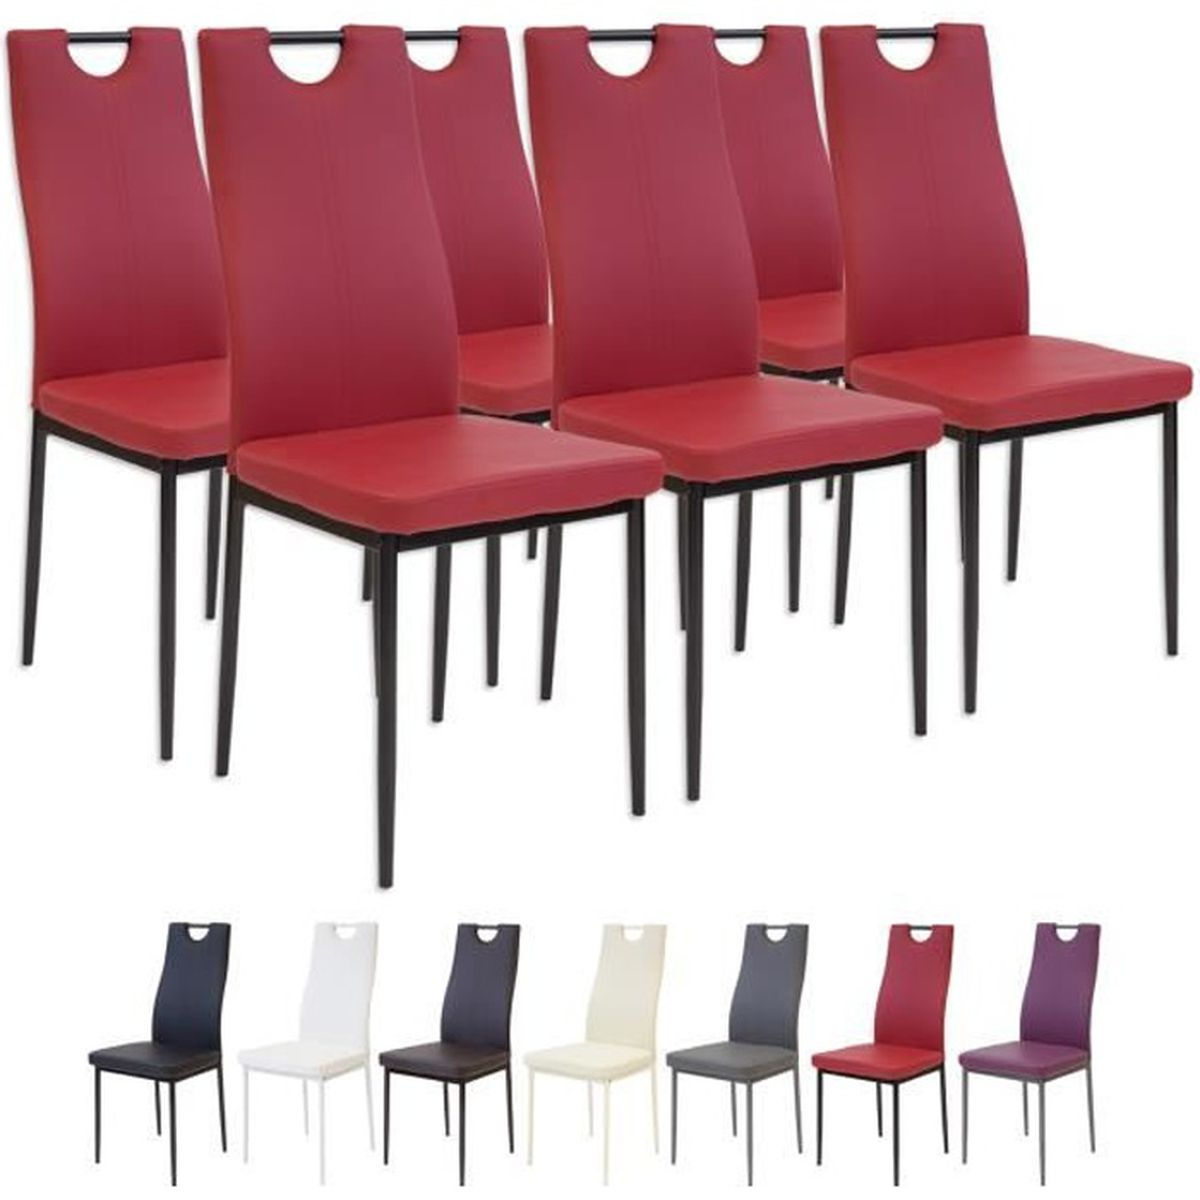 Salle a manger rouge fashion designs for Chaise de salle a manger rouge